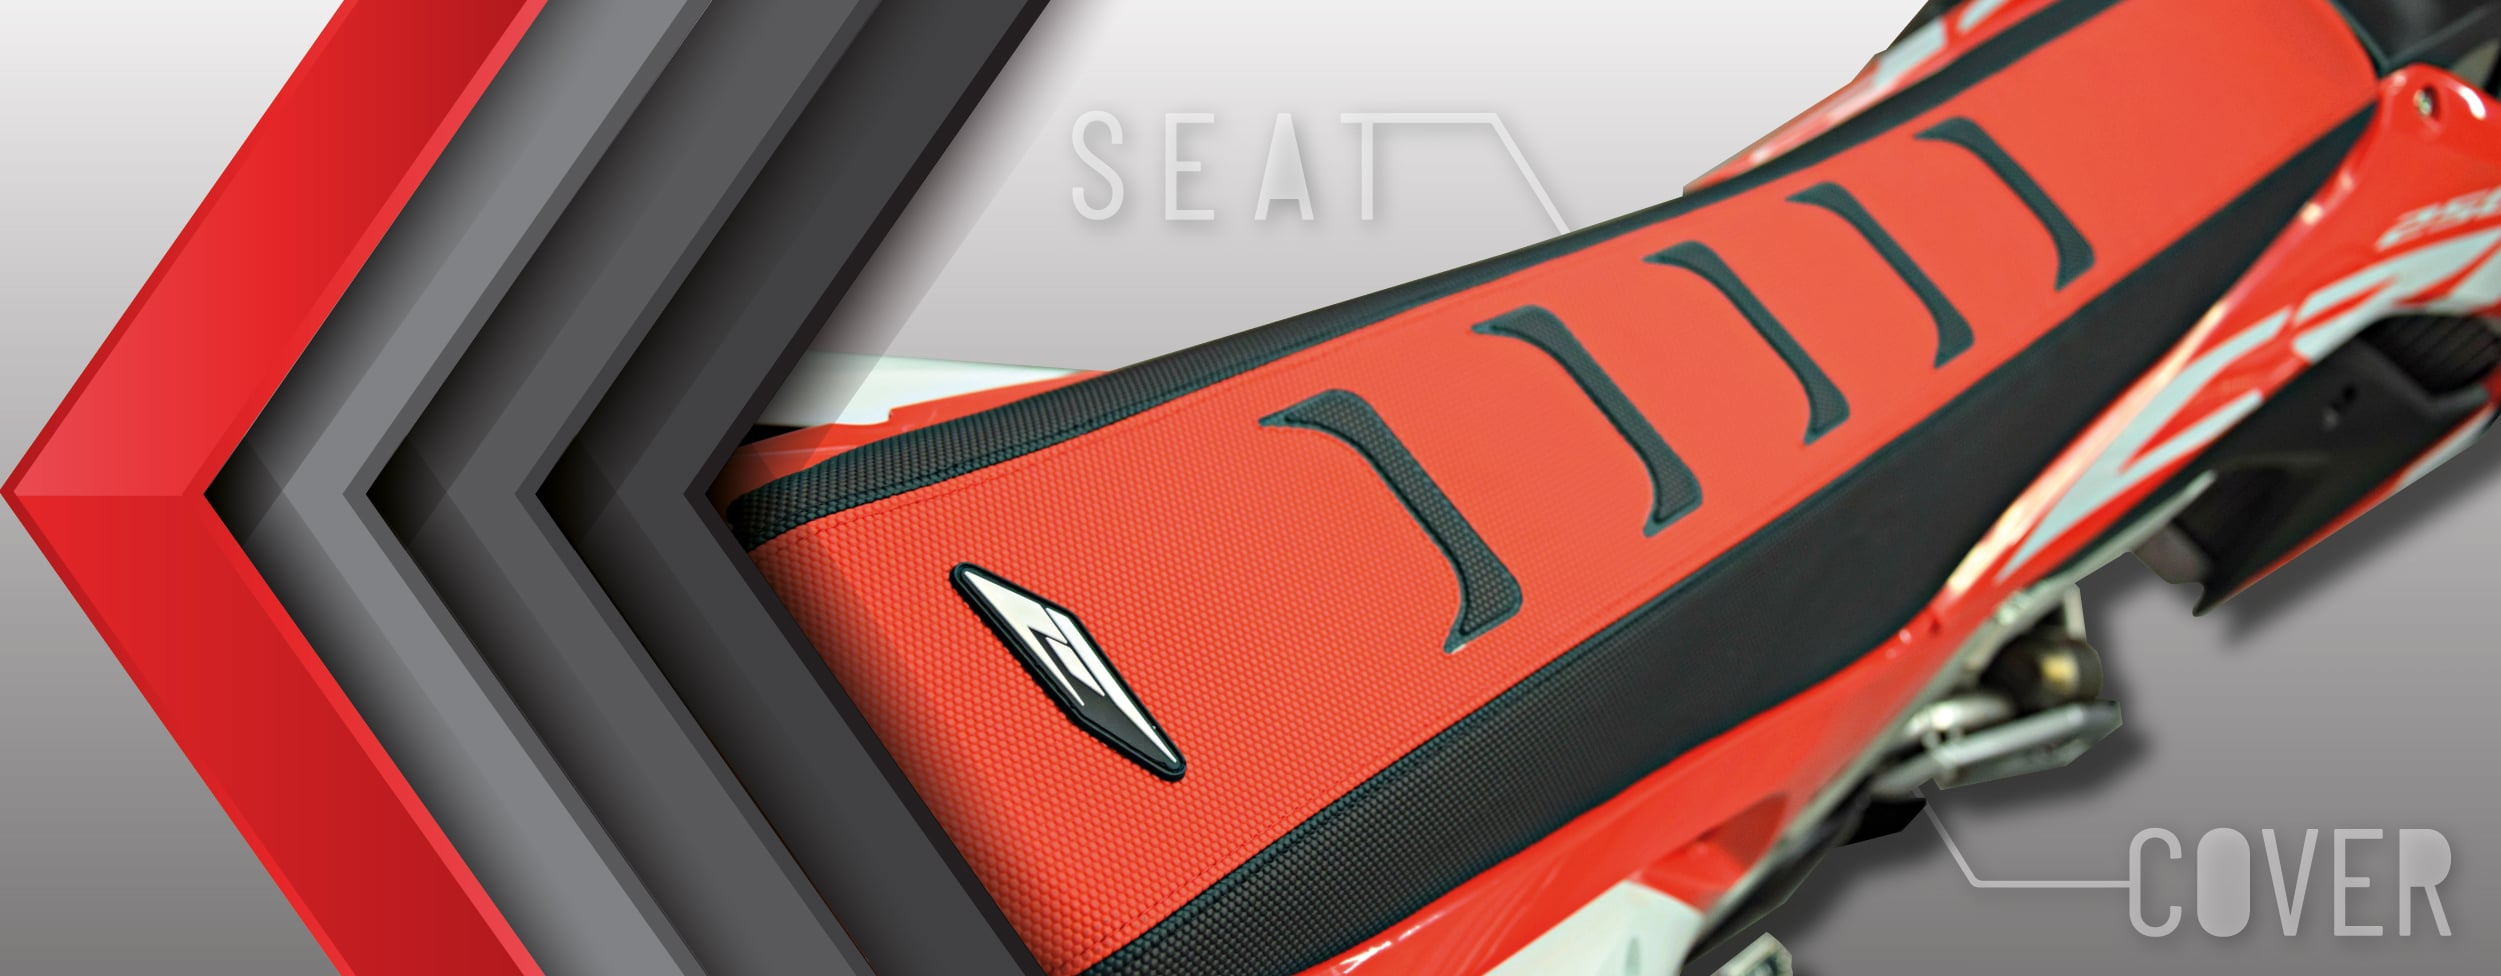 seat-cover